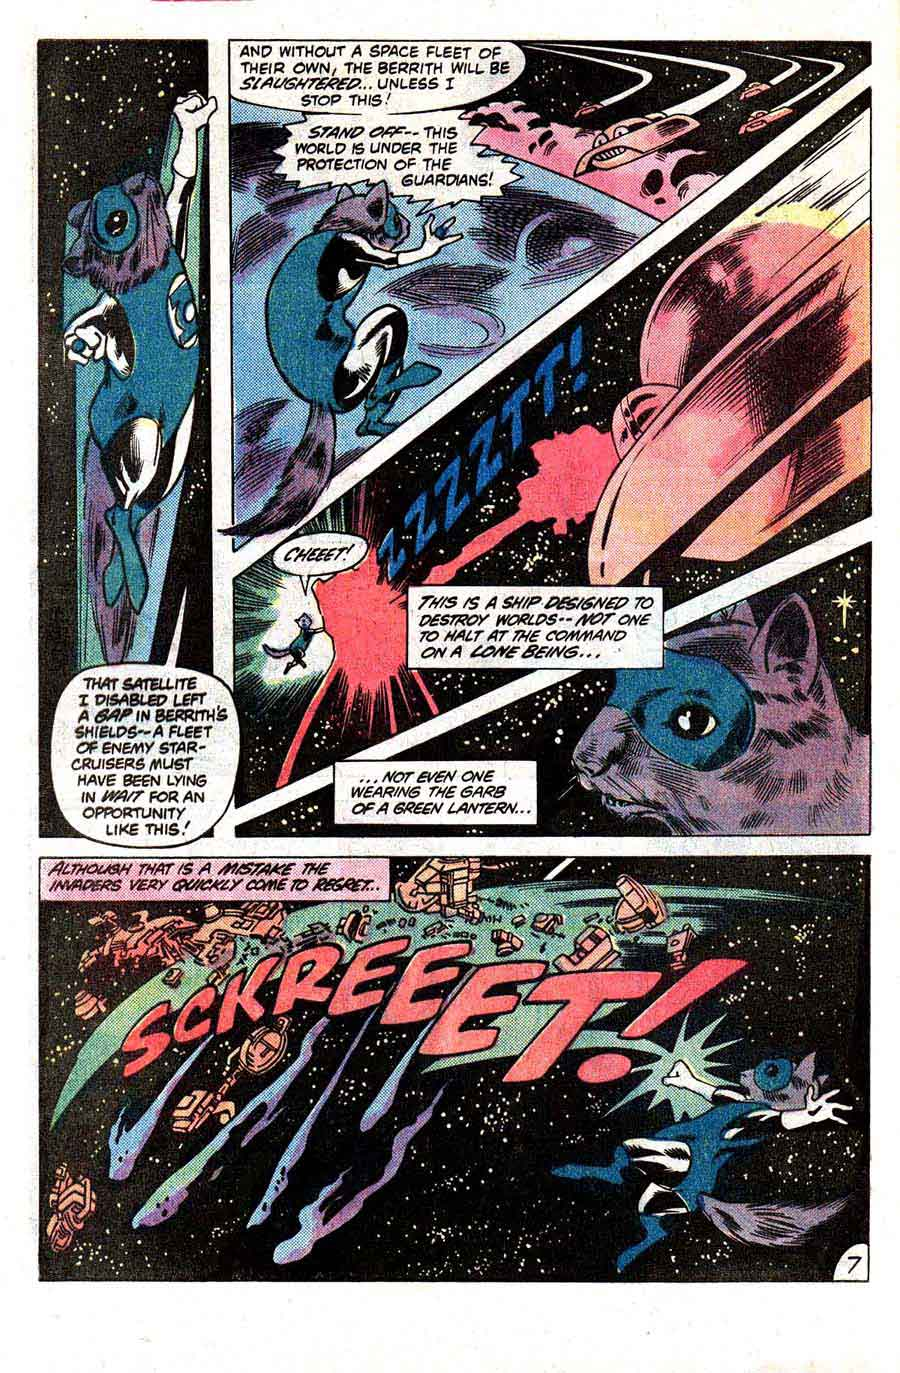 Green Lantern v2 #148 dc comic book page art by Don Newton